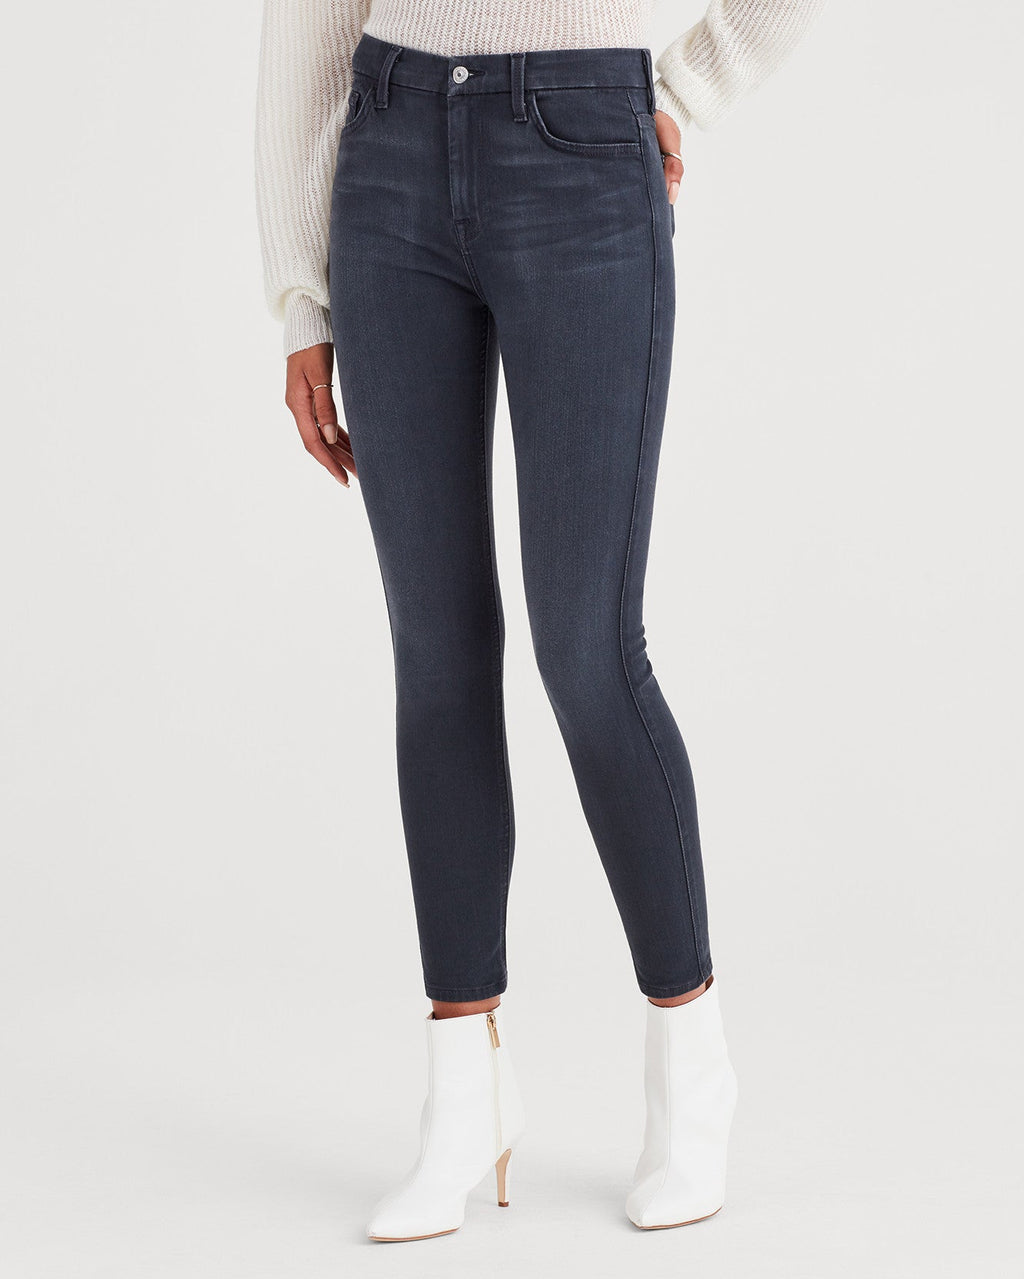 Blair Evening High Waist Ankle Skinny